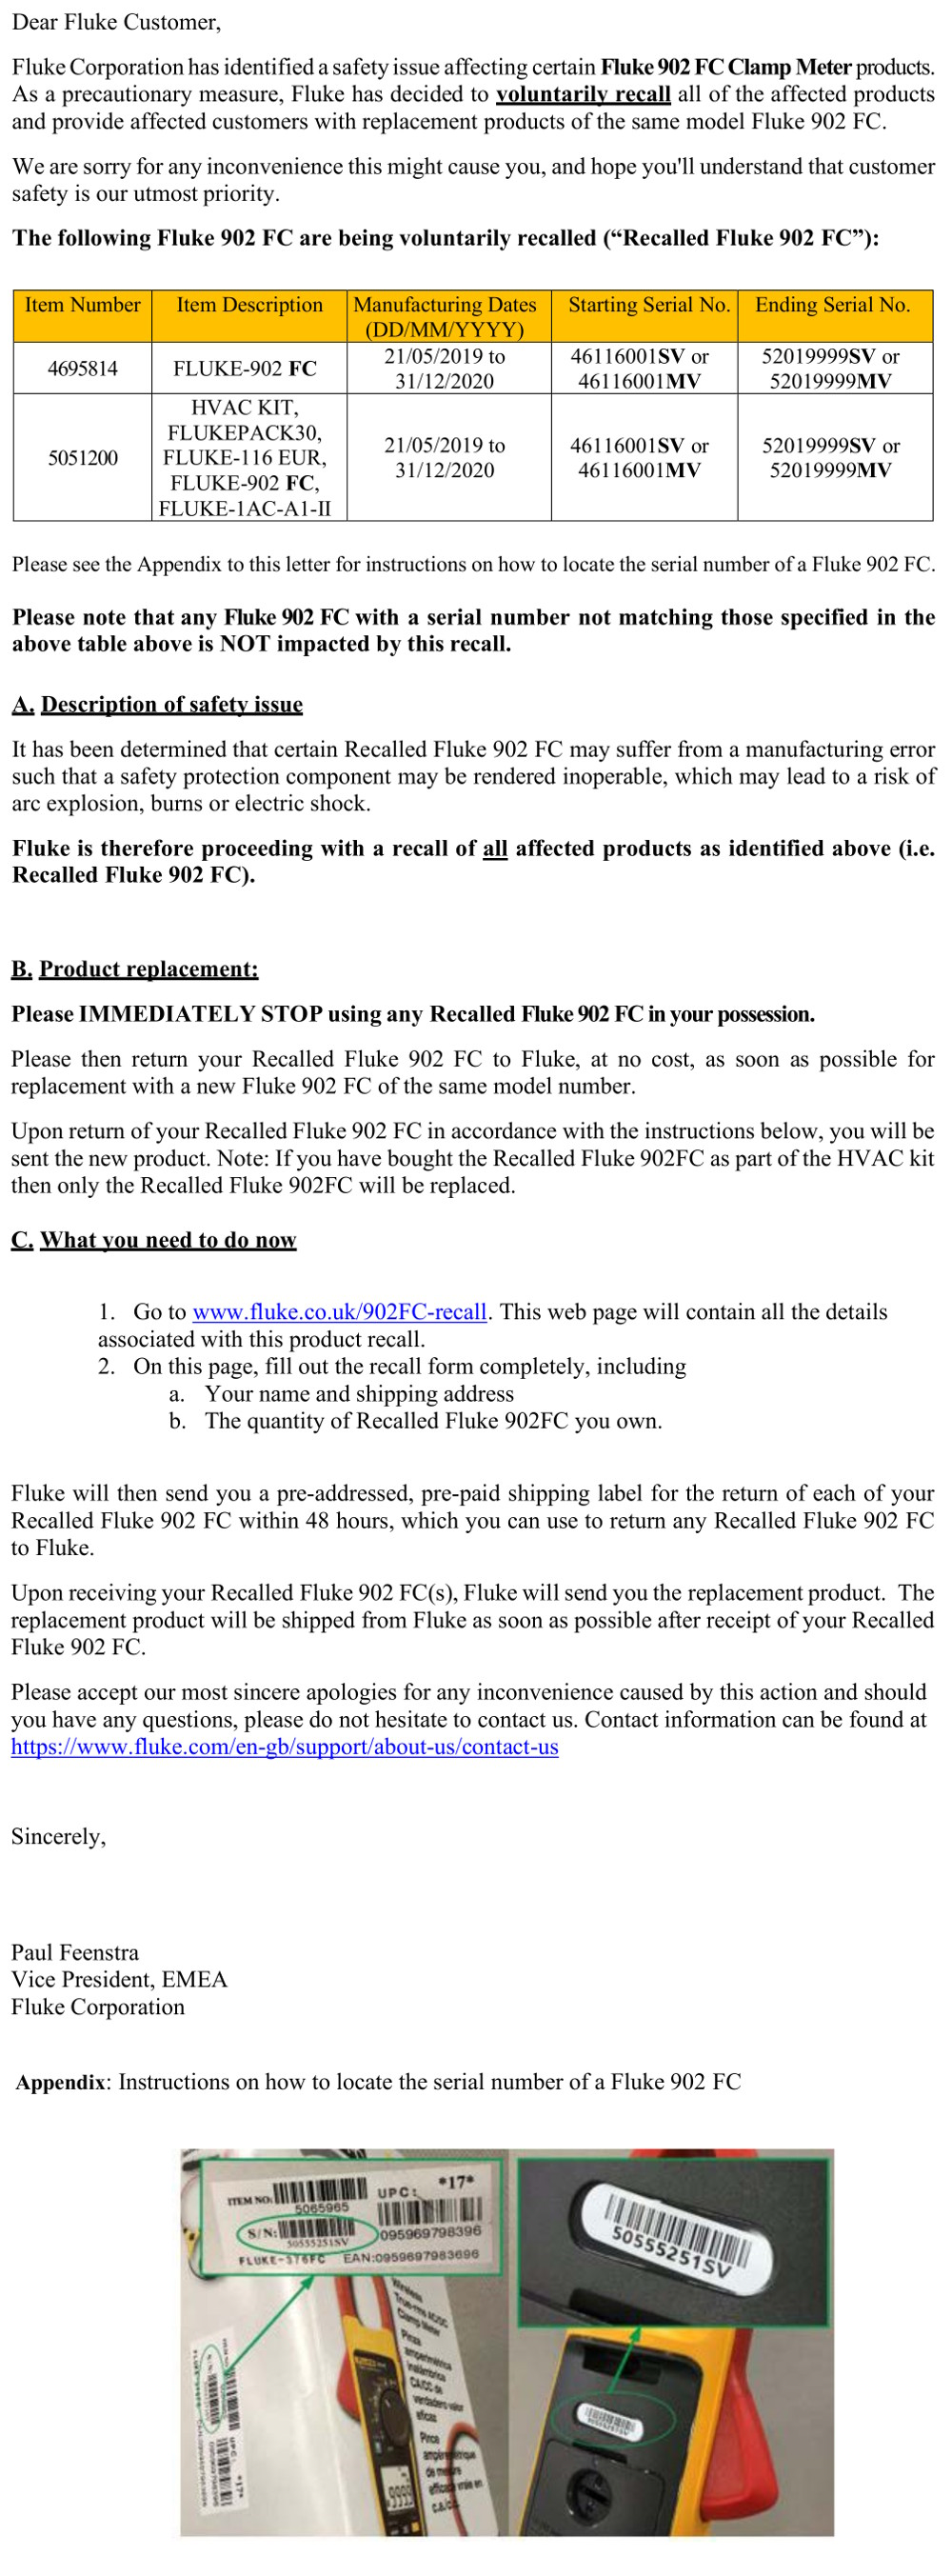 FLUKE Recall Letter For The FLUKE 902 FC